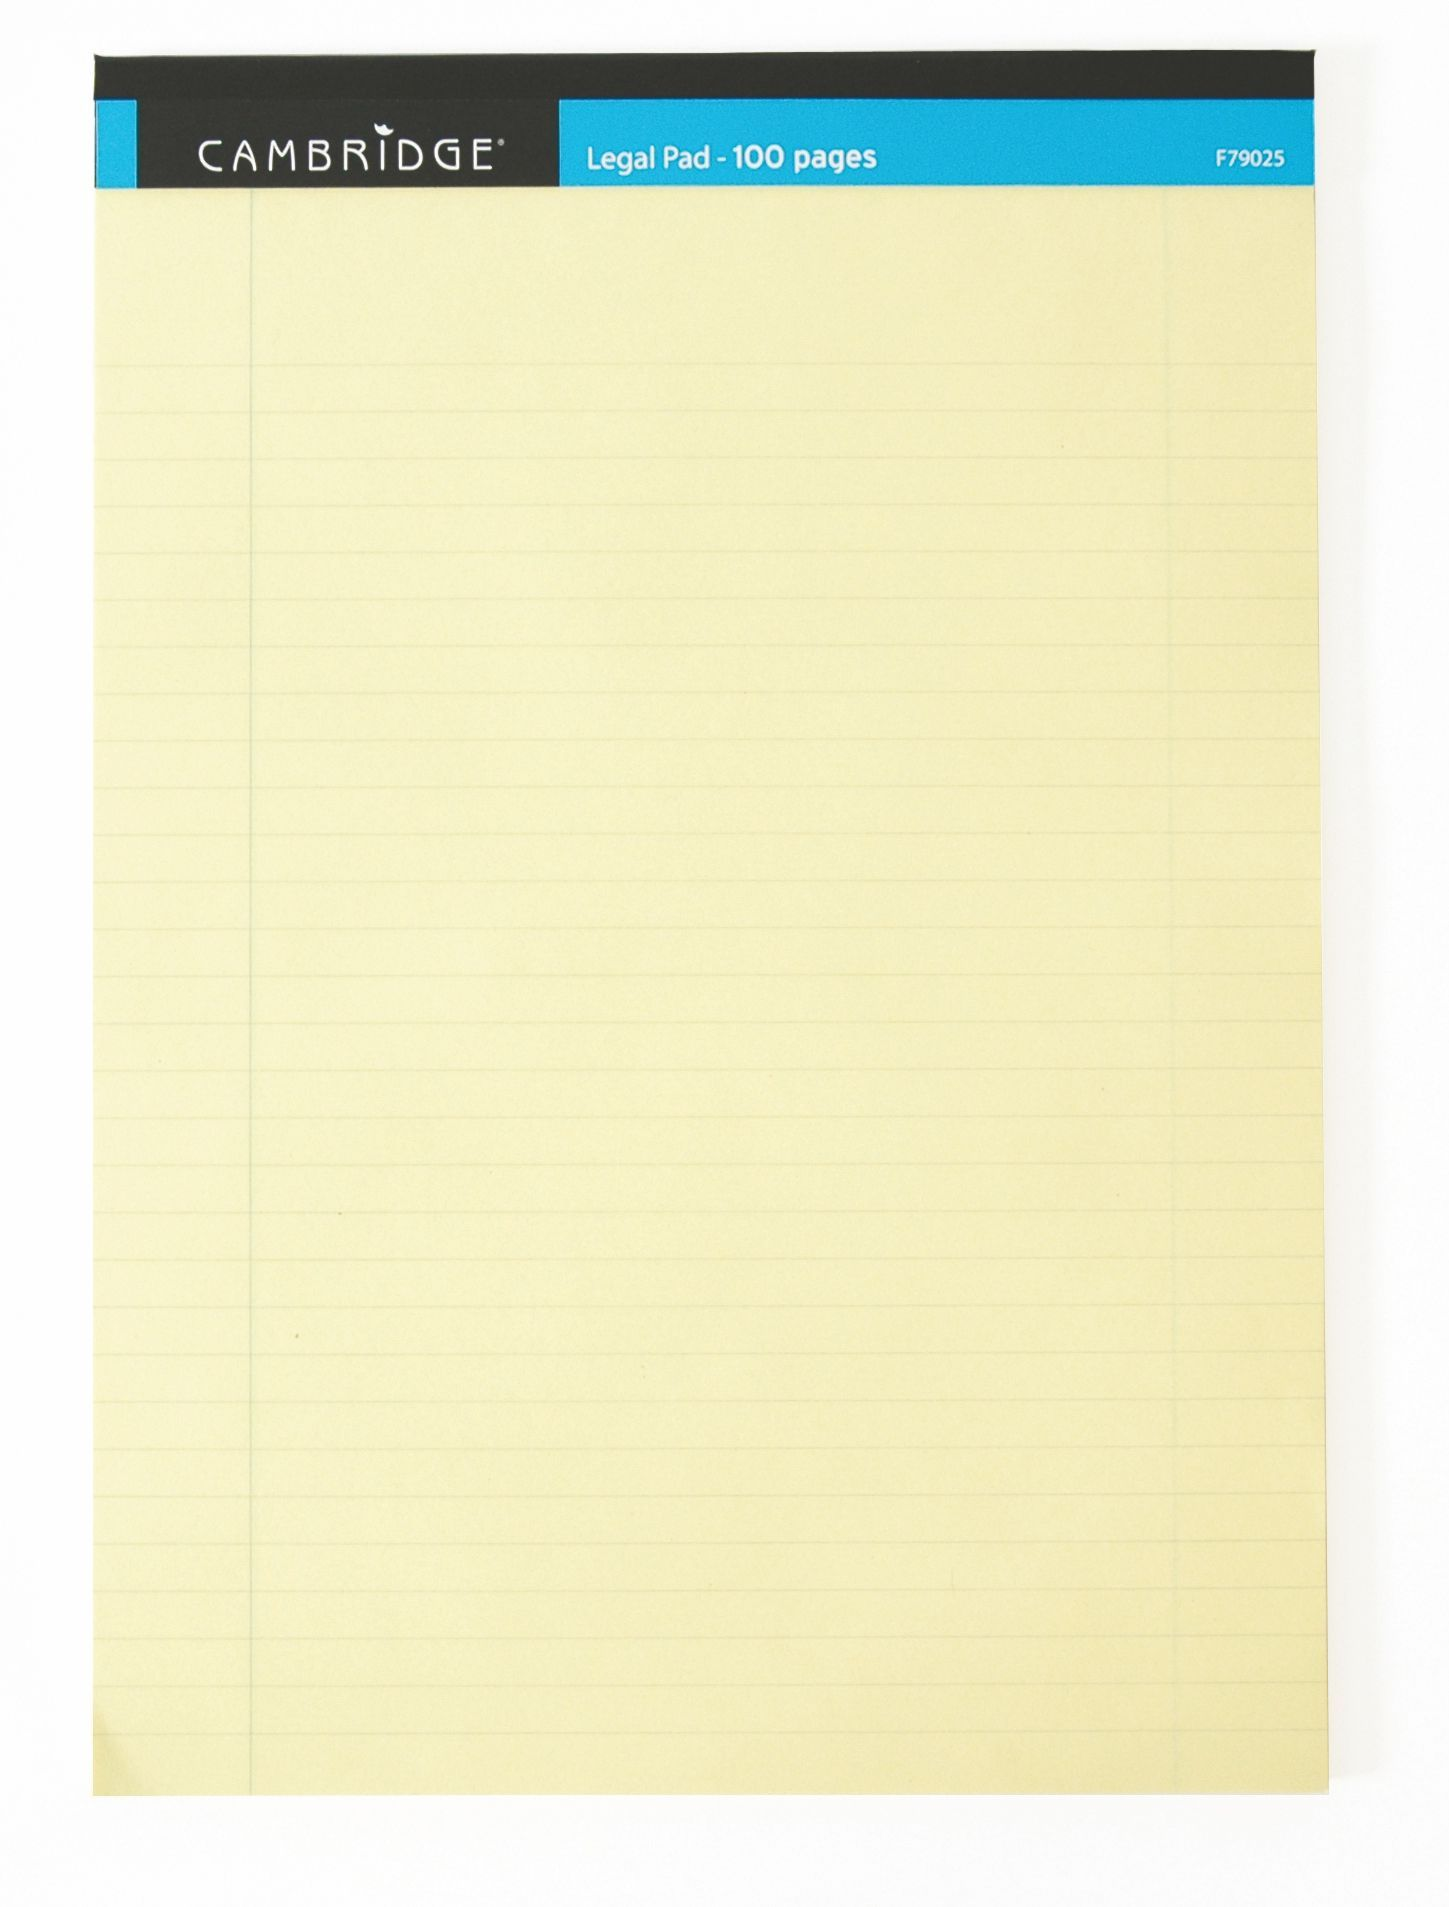 Cambridge Everyday A4 Yellow Legal Pad 100 Pages Ruled Margin Pack Of 10 100080179